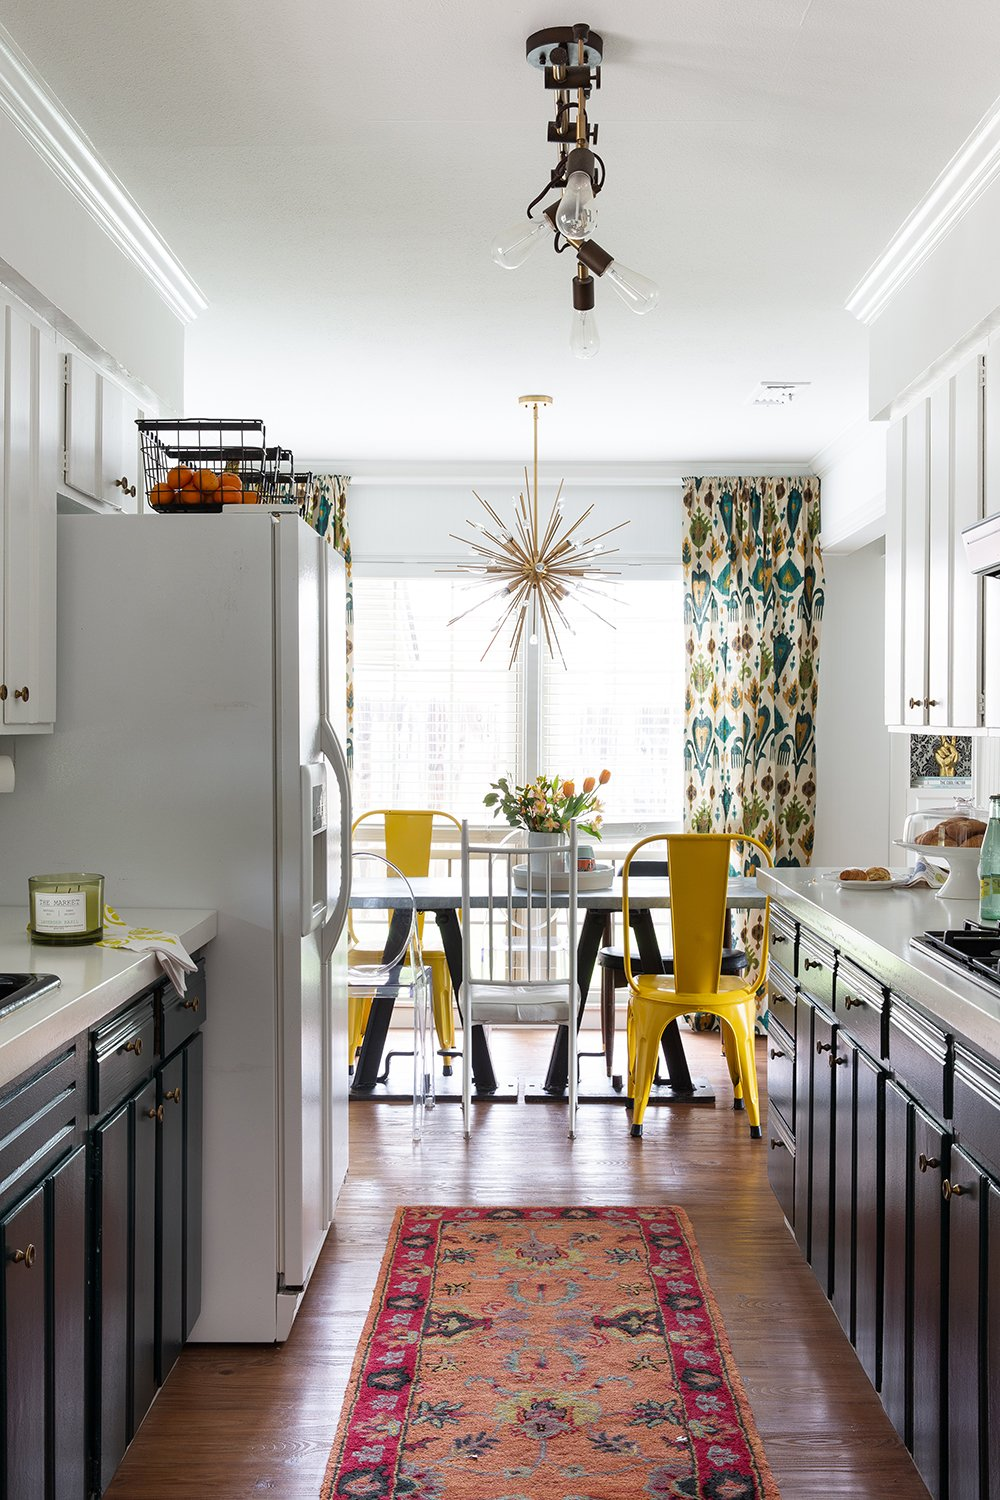 Overwhelmed by choosing lighting? Learn all about kitchen lighting selections in this useful post from interior designer Lesley Myrick.